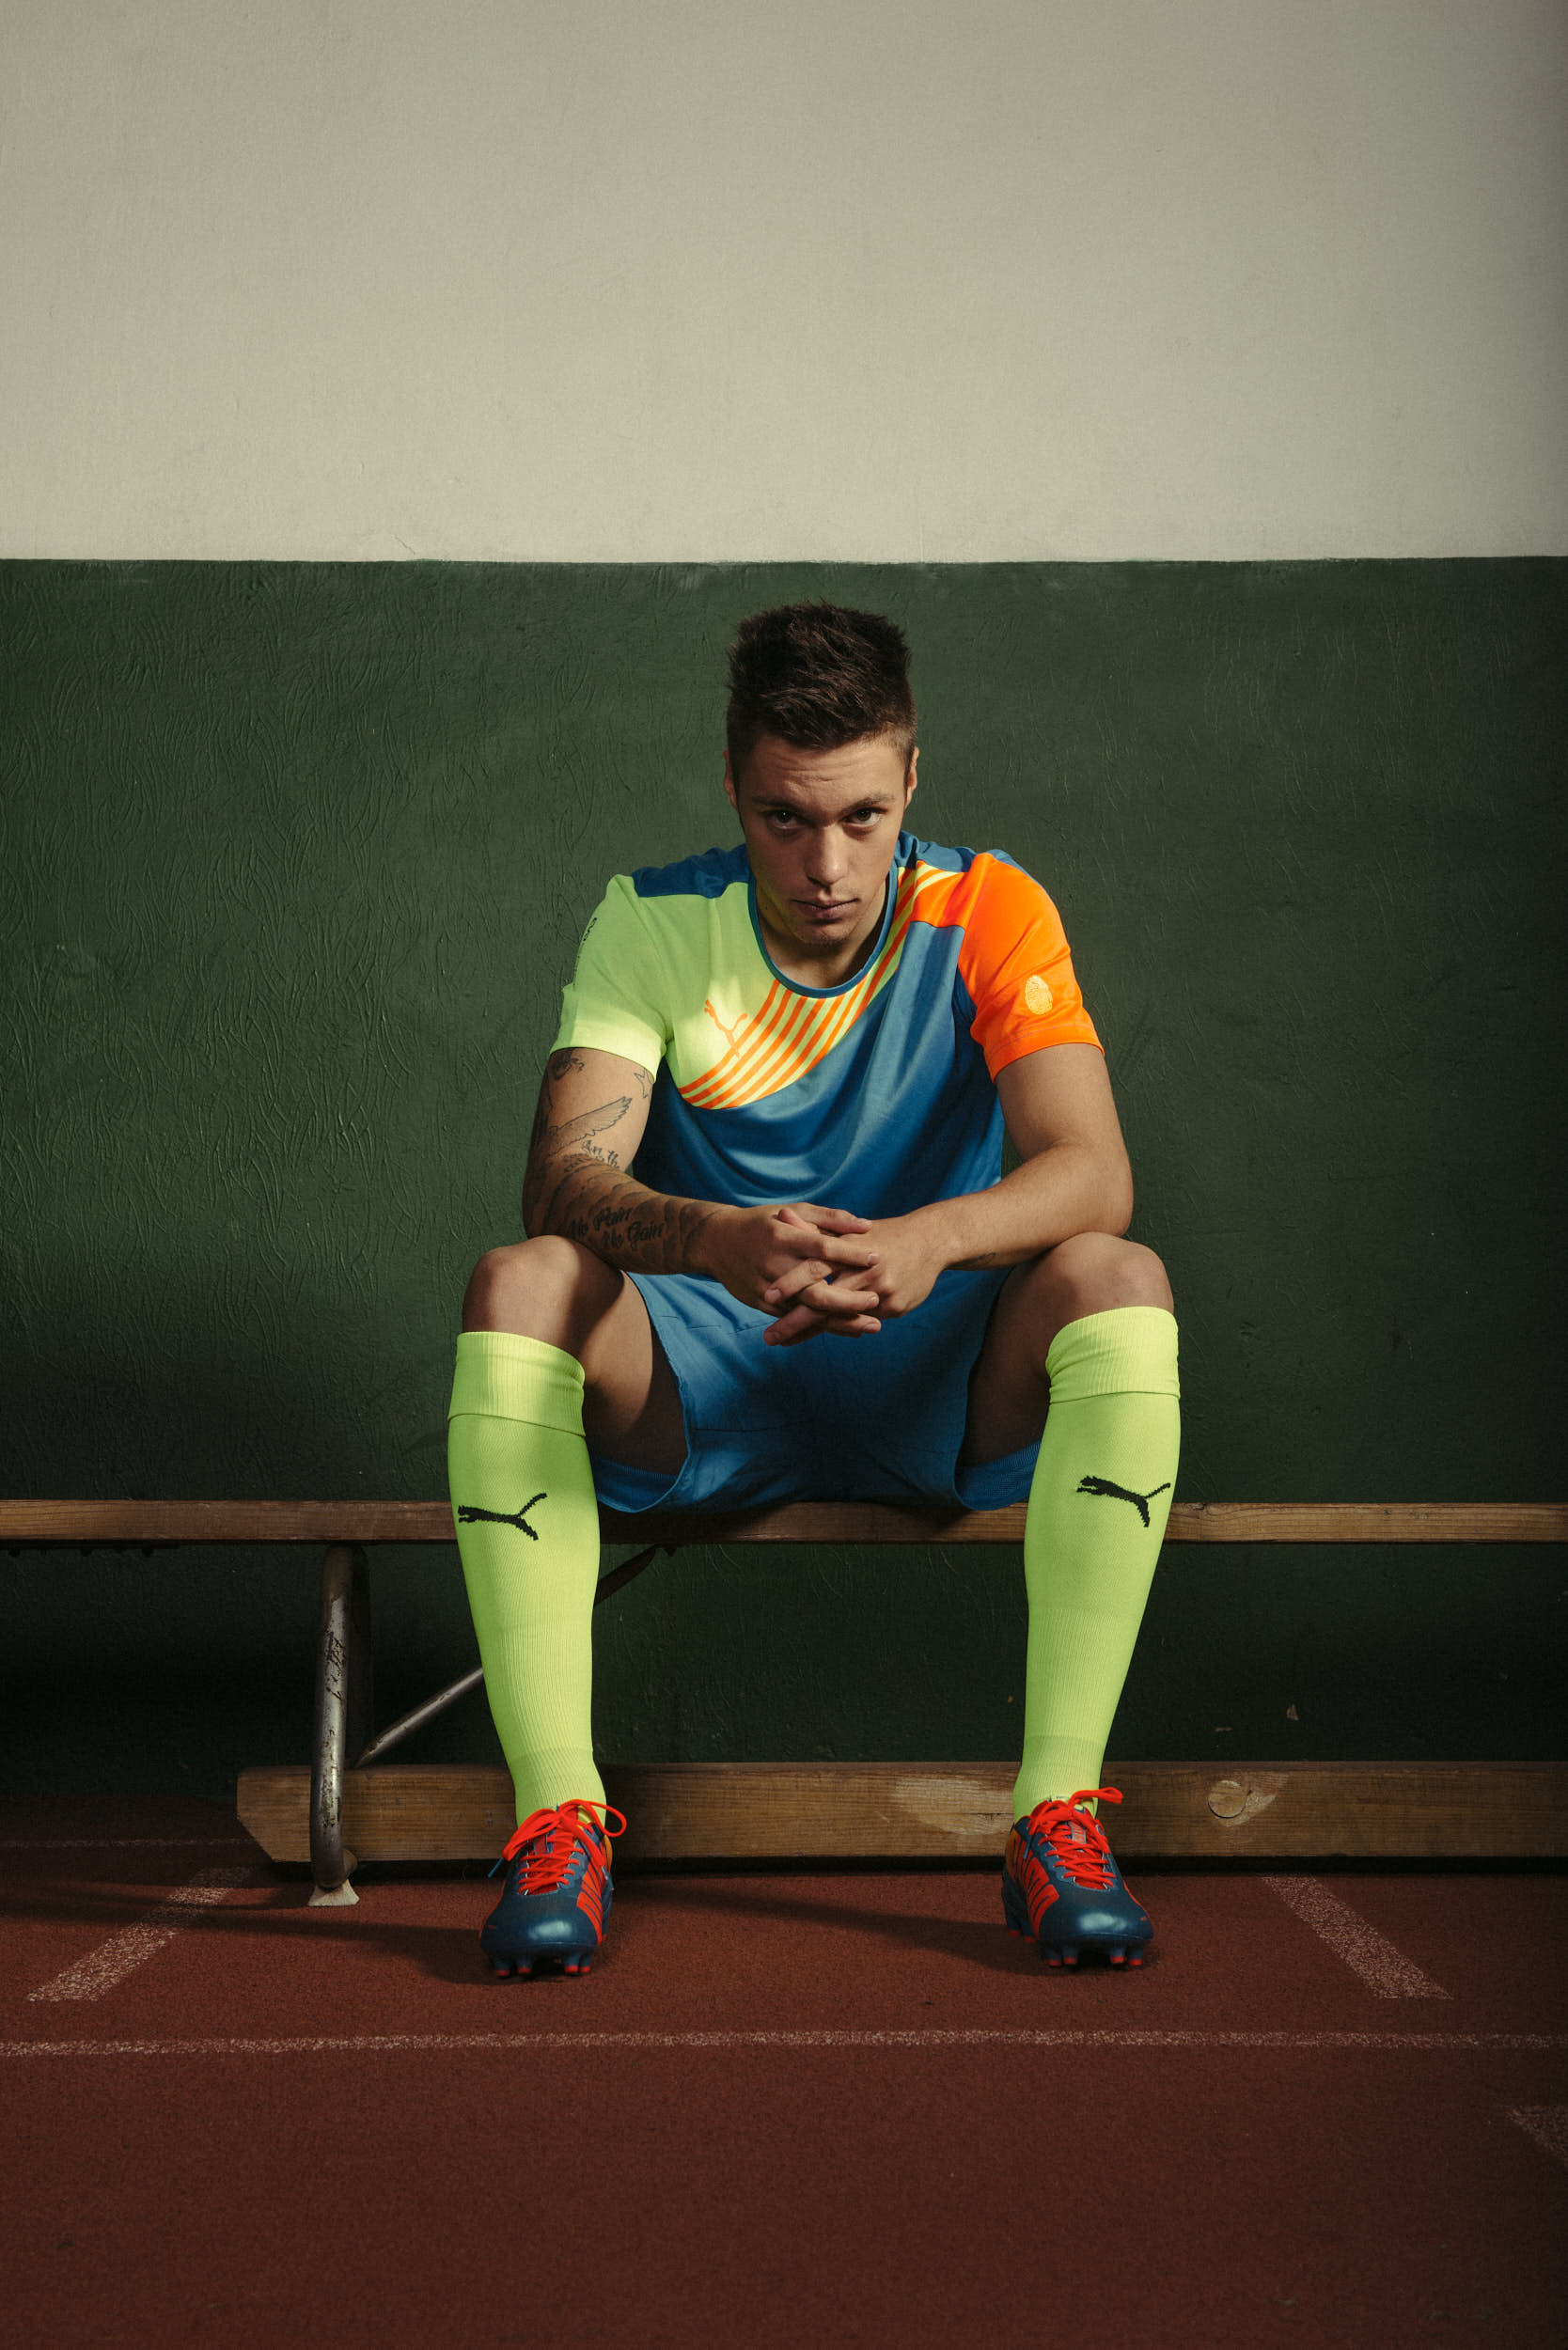 Brand campaign imagery: Professional football player Václav Kadlec sitting on a bench in football apparel.